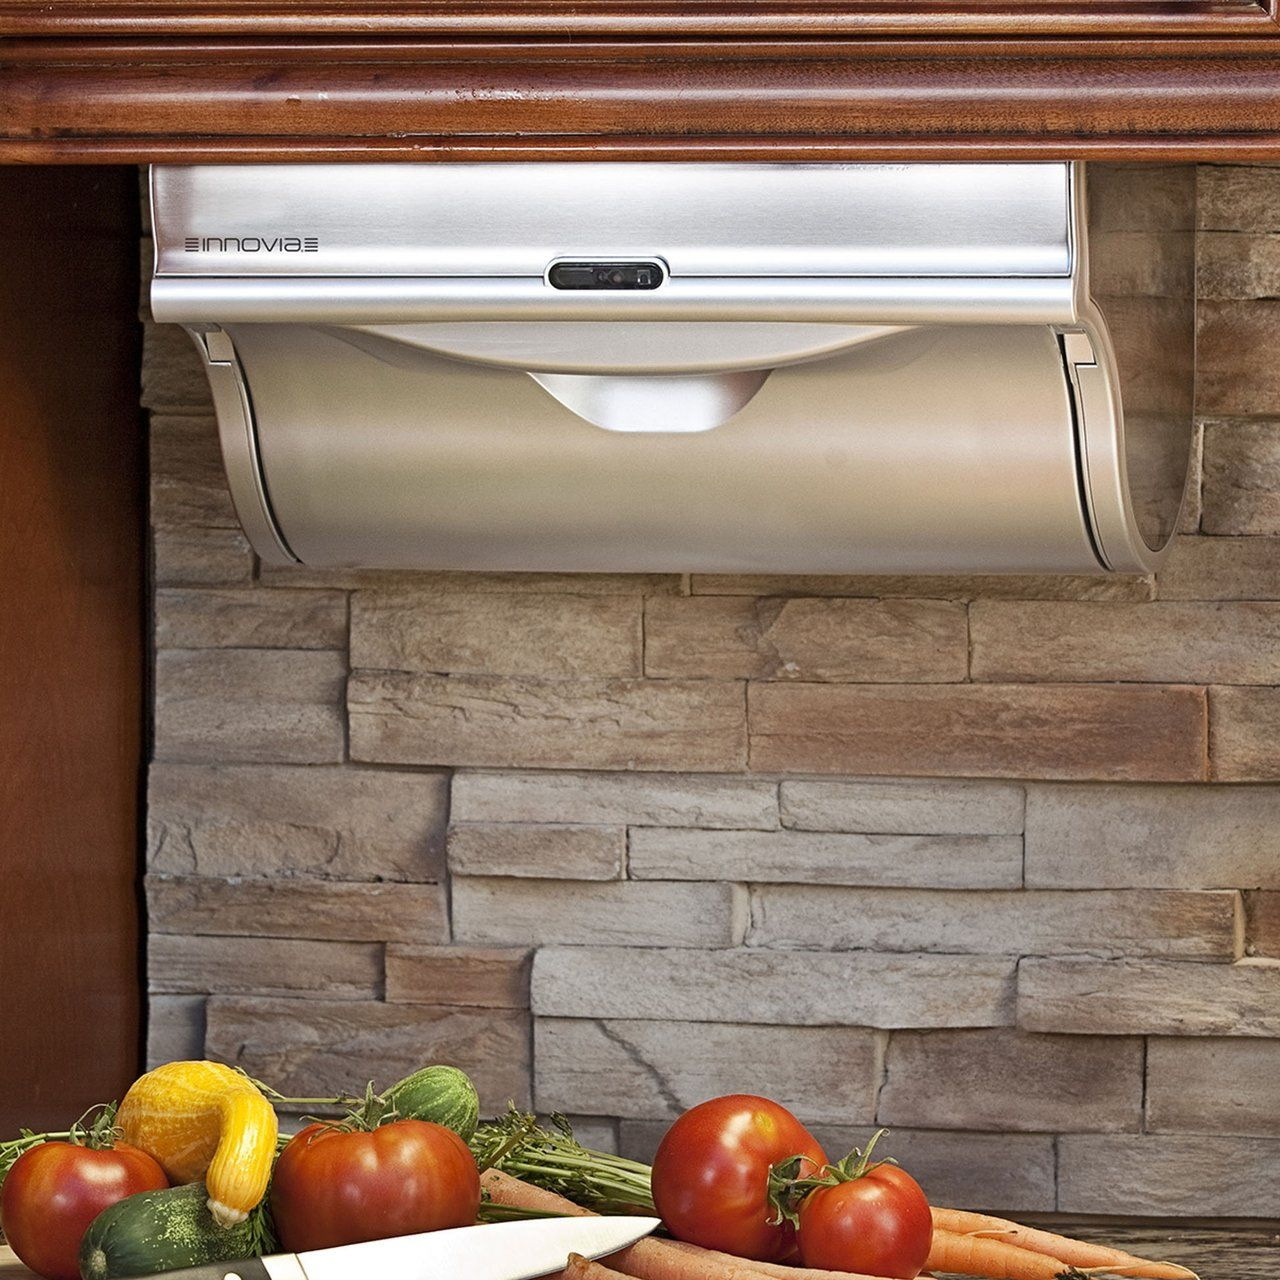 Motion Activated Paper Towel Dispenser By Innovia Dispenser